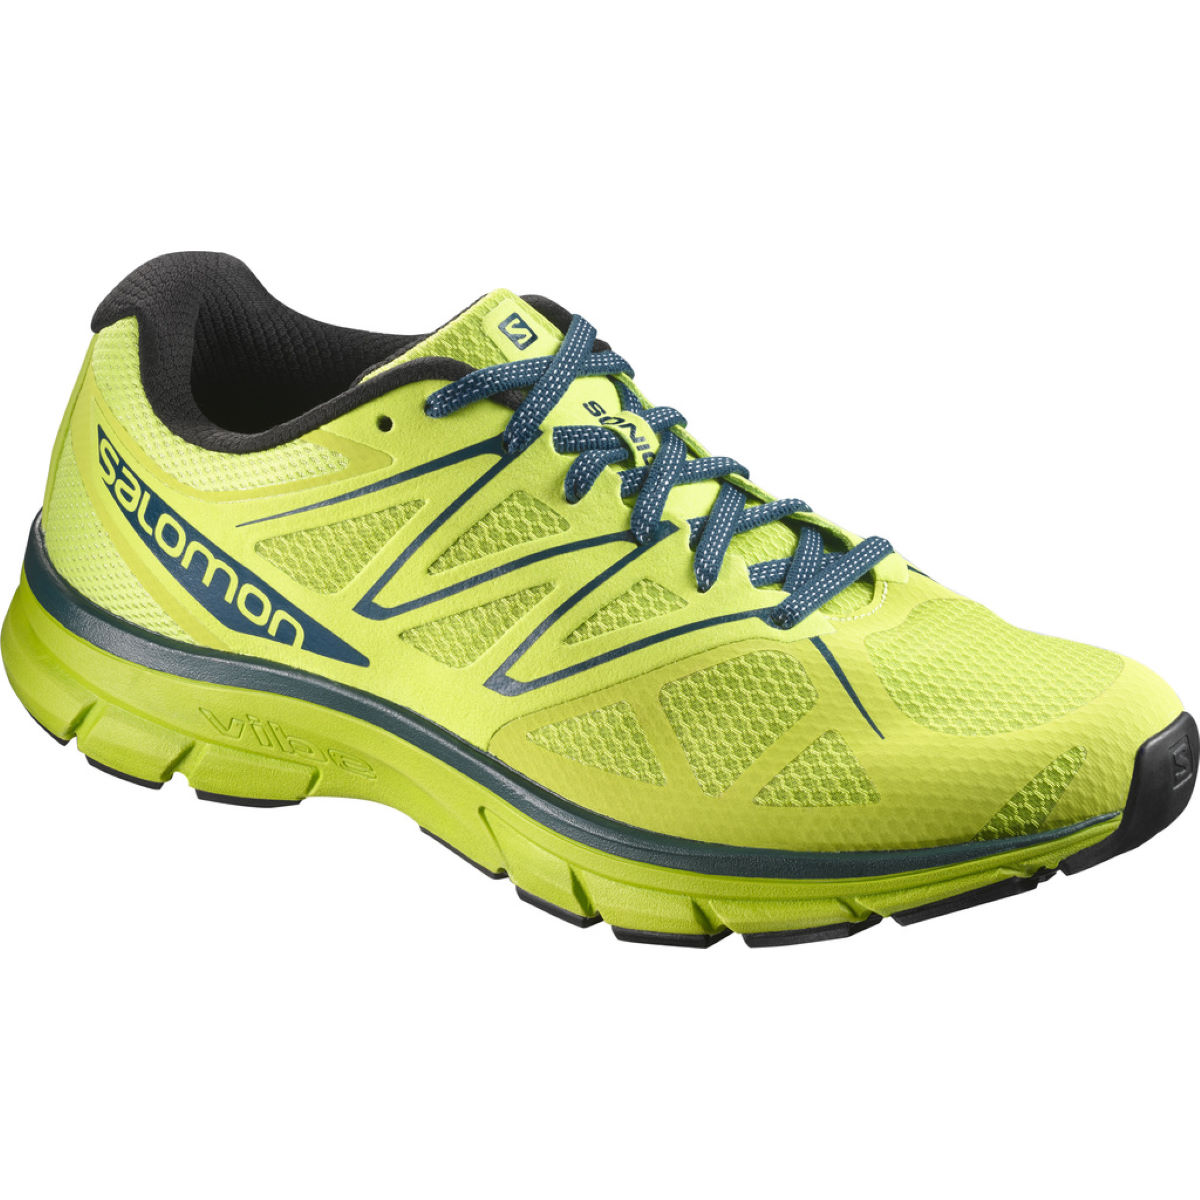 Chaussures Salomon Sonic (PE17) - 10 UK Lime Green Chaussures de running amorties